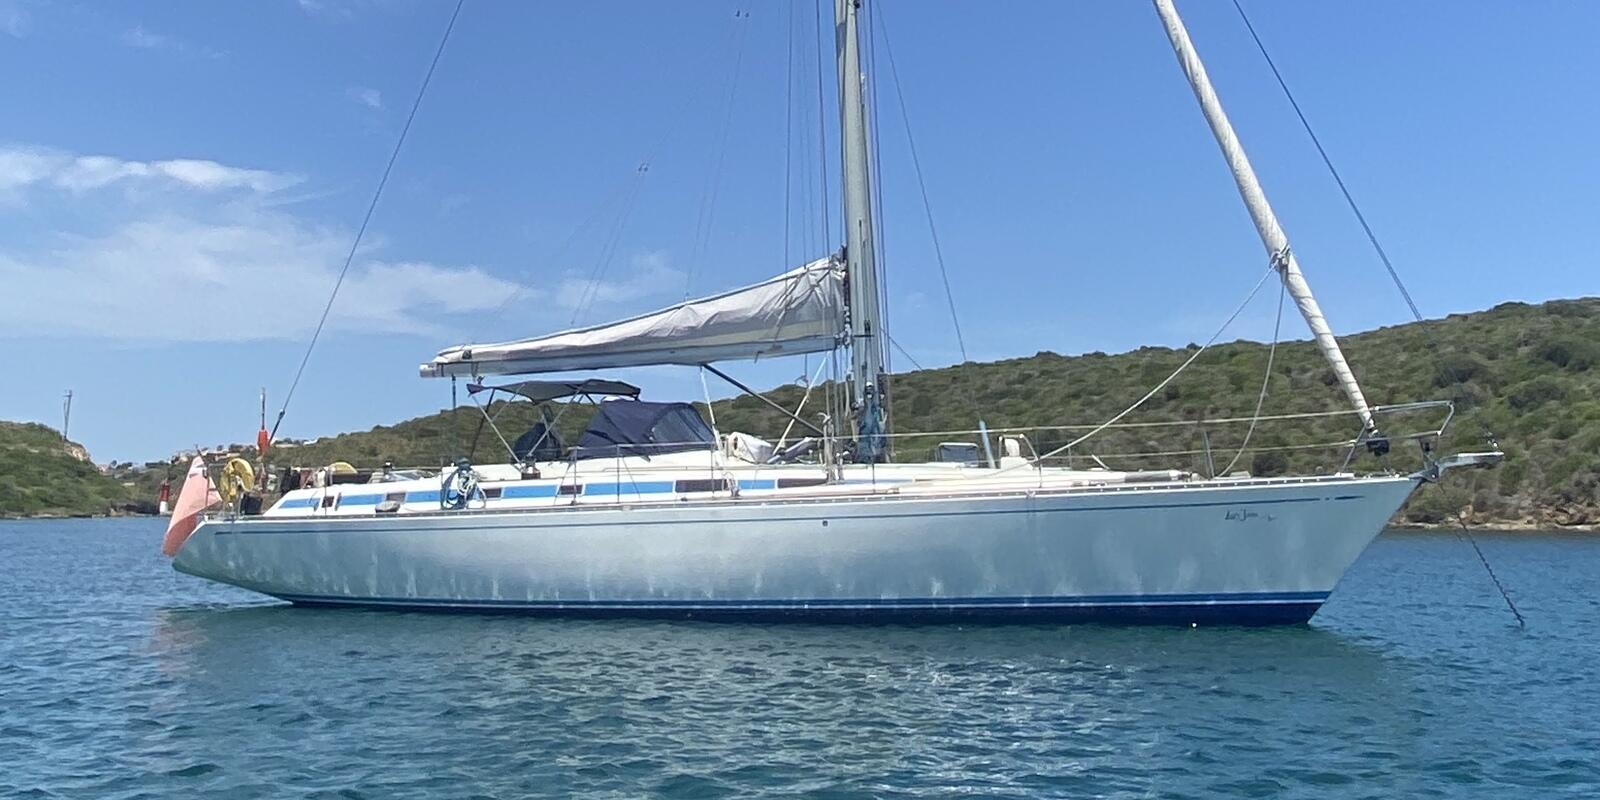 DAY CHARTER ON A CREWED SWAN 57 IN CORSICA